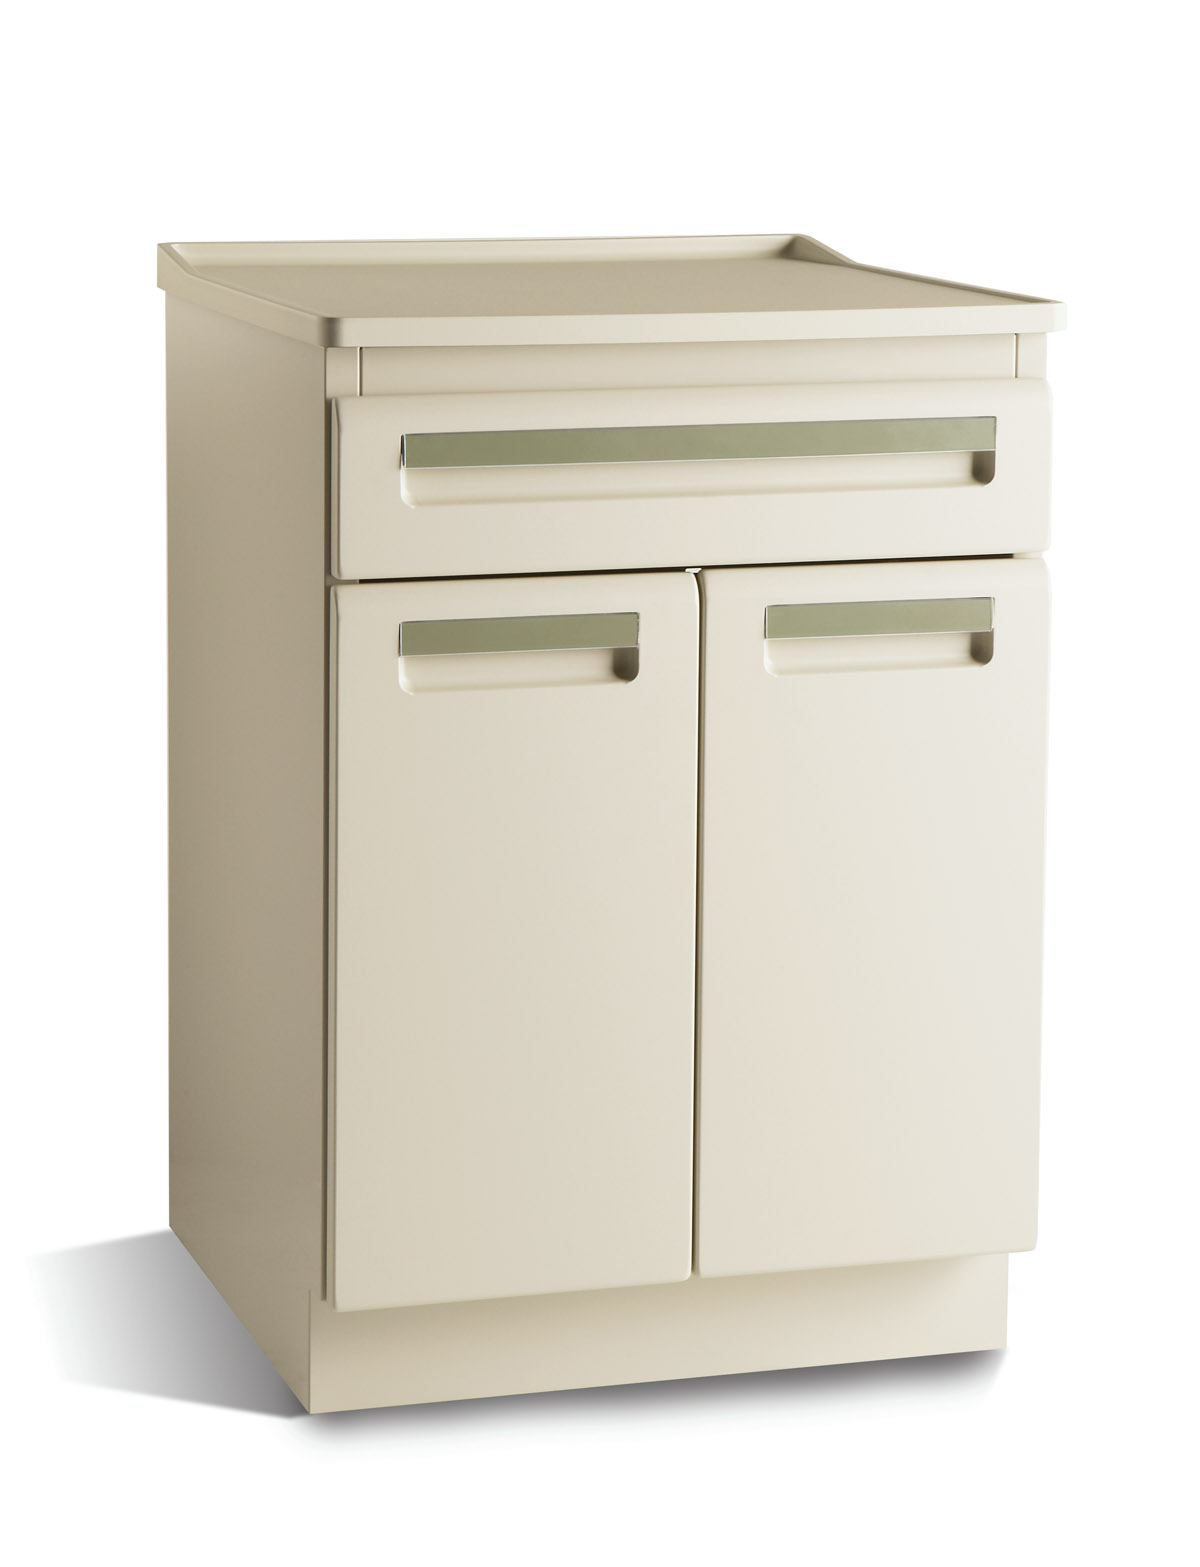 CABINET, TREATMENT, MIDMARK 6060, W/SHELF, SHADOW